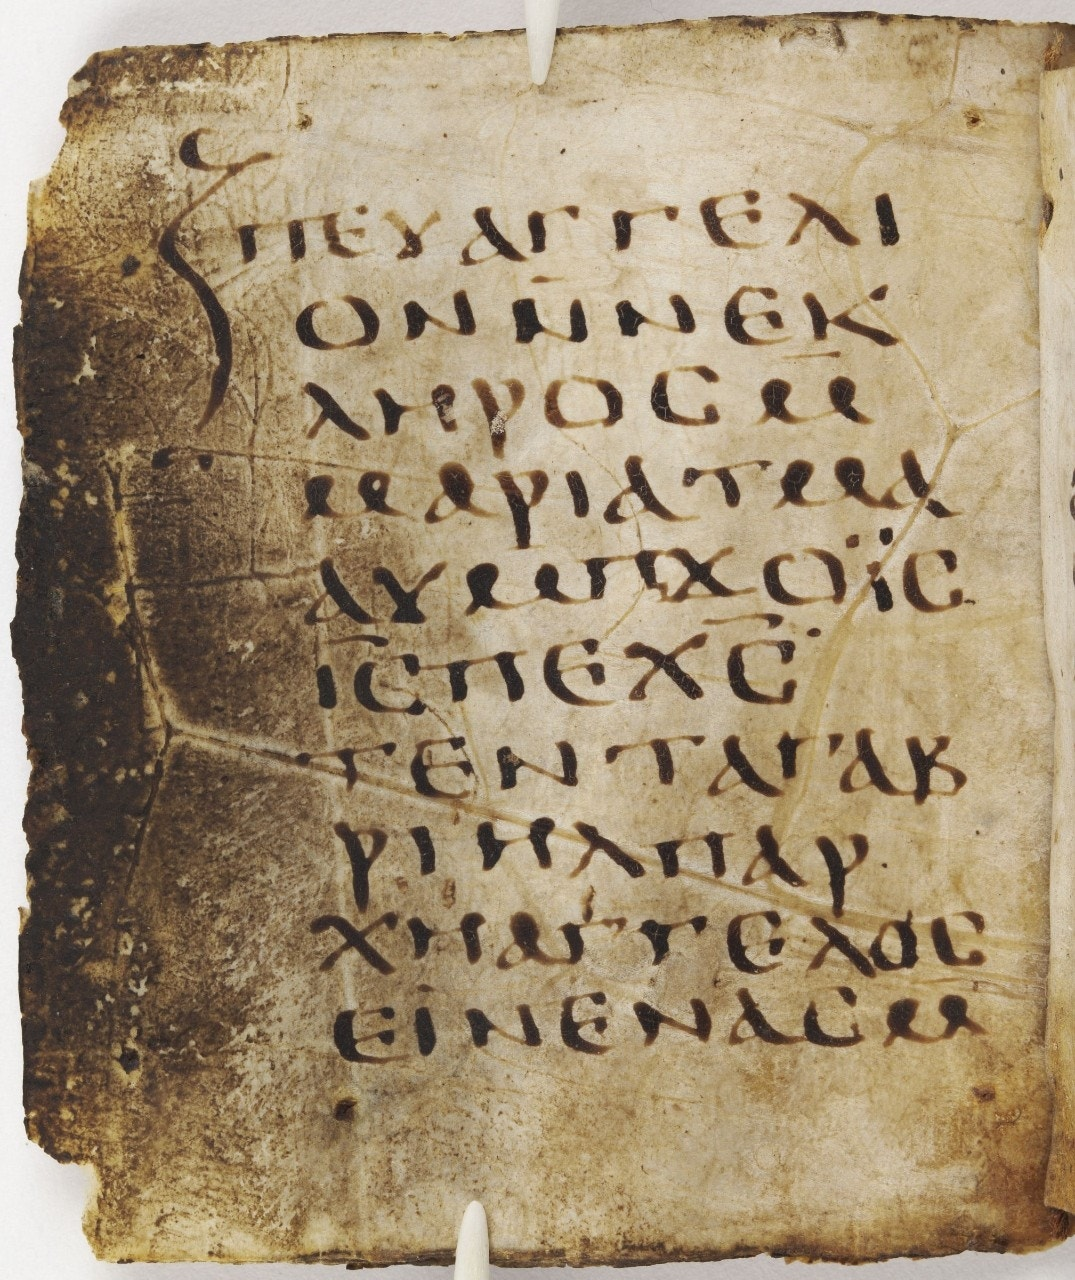 Newfound 'Gospel of the Lots of Mary' discovered in ancient text